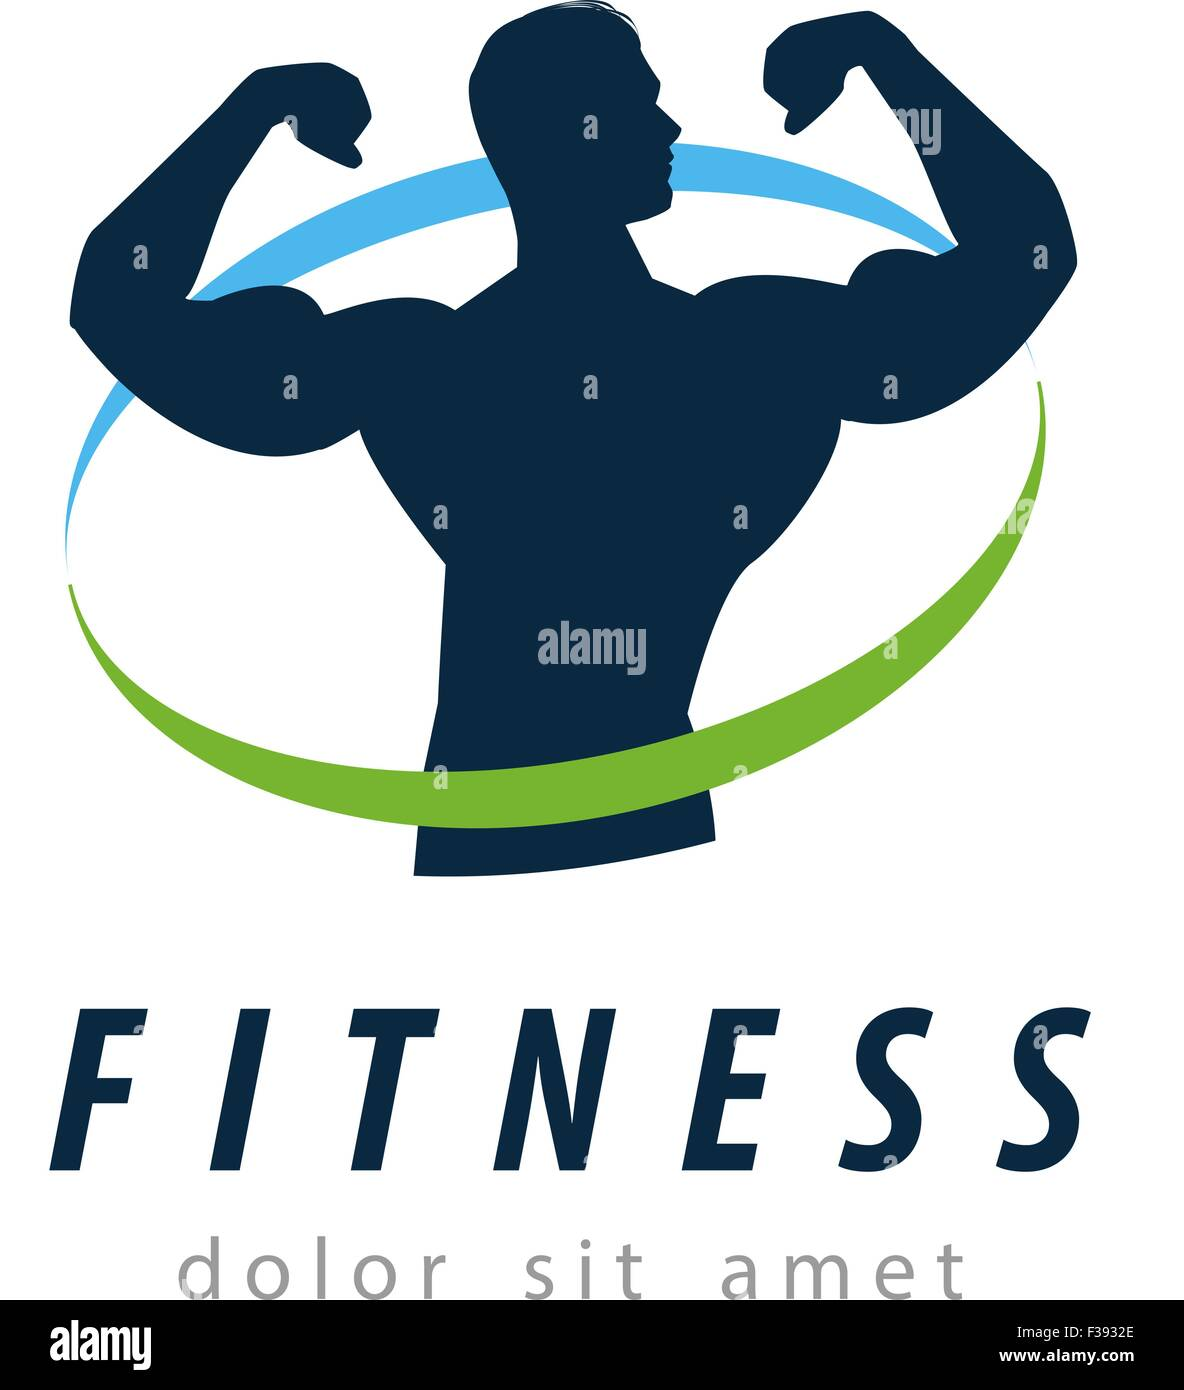 fitness vector logo design template. health or gym icon Stock Vector